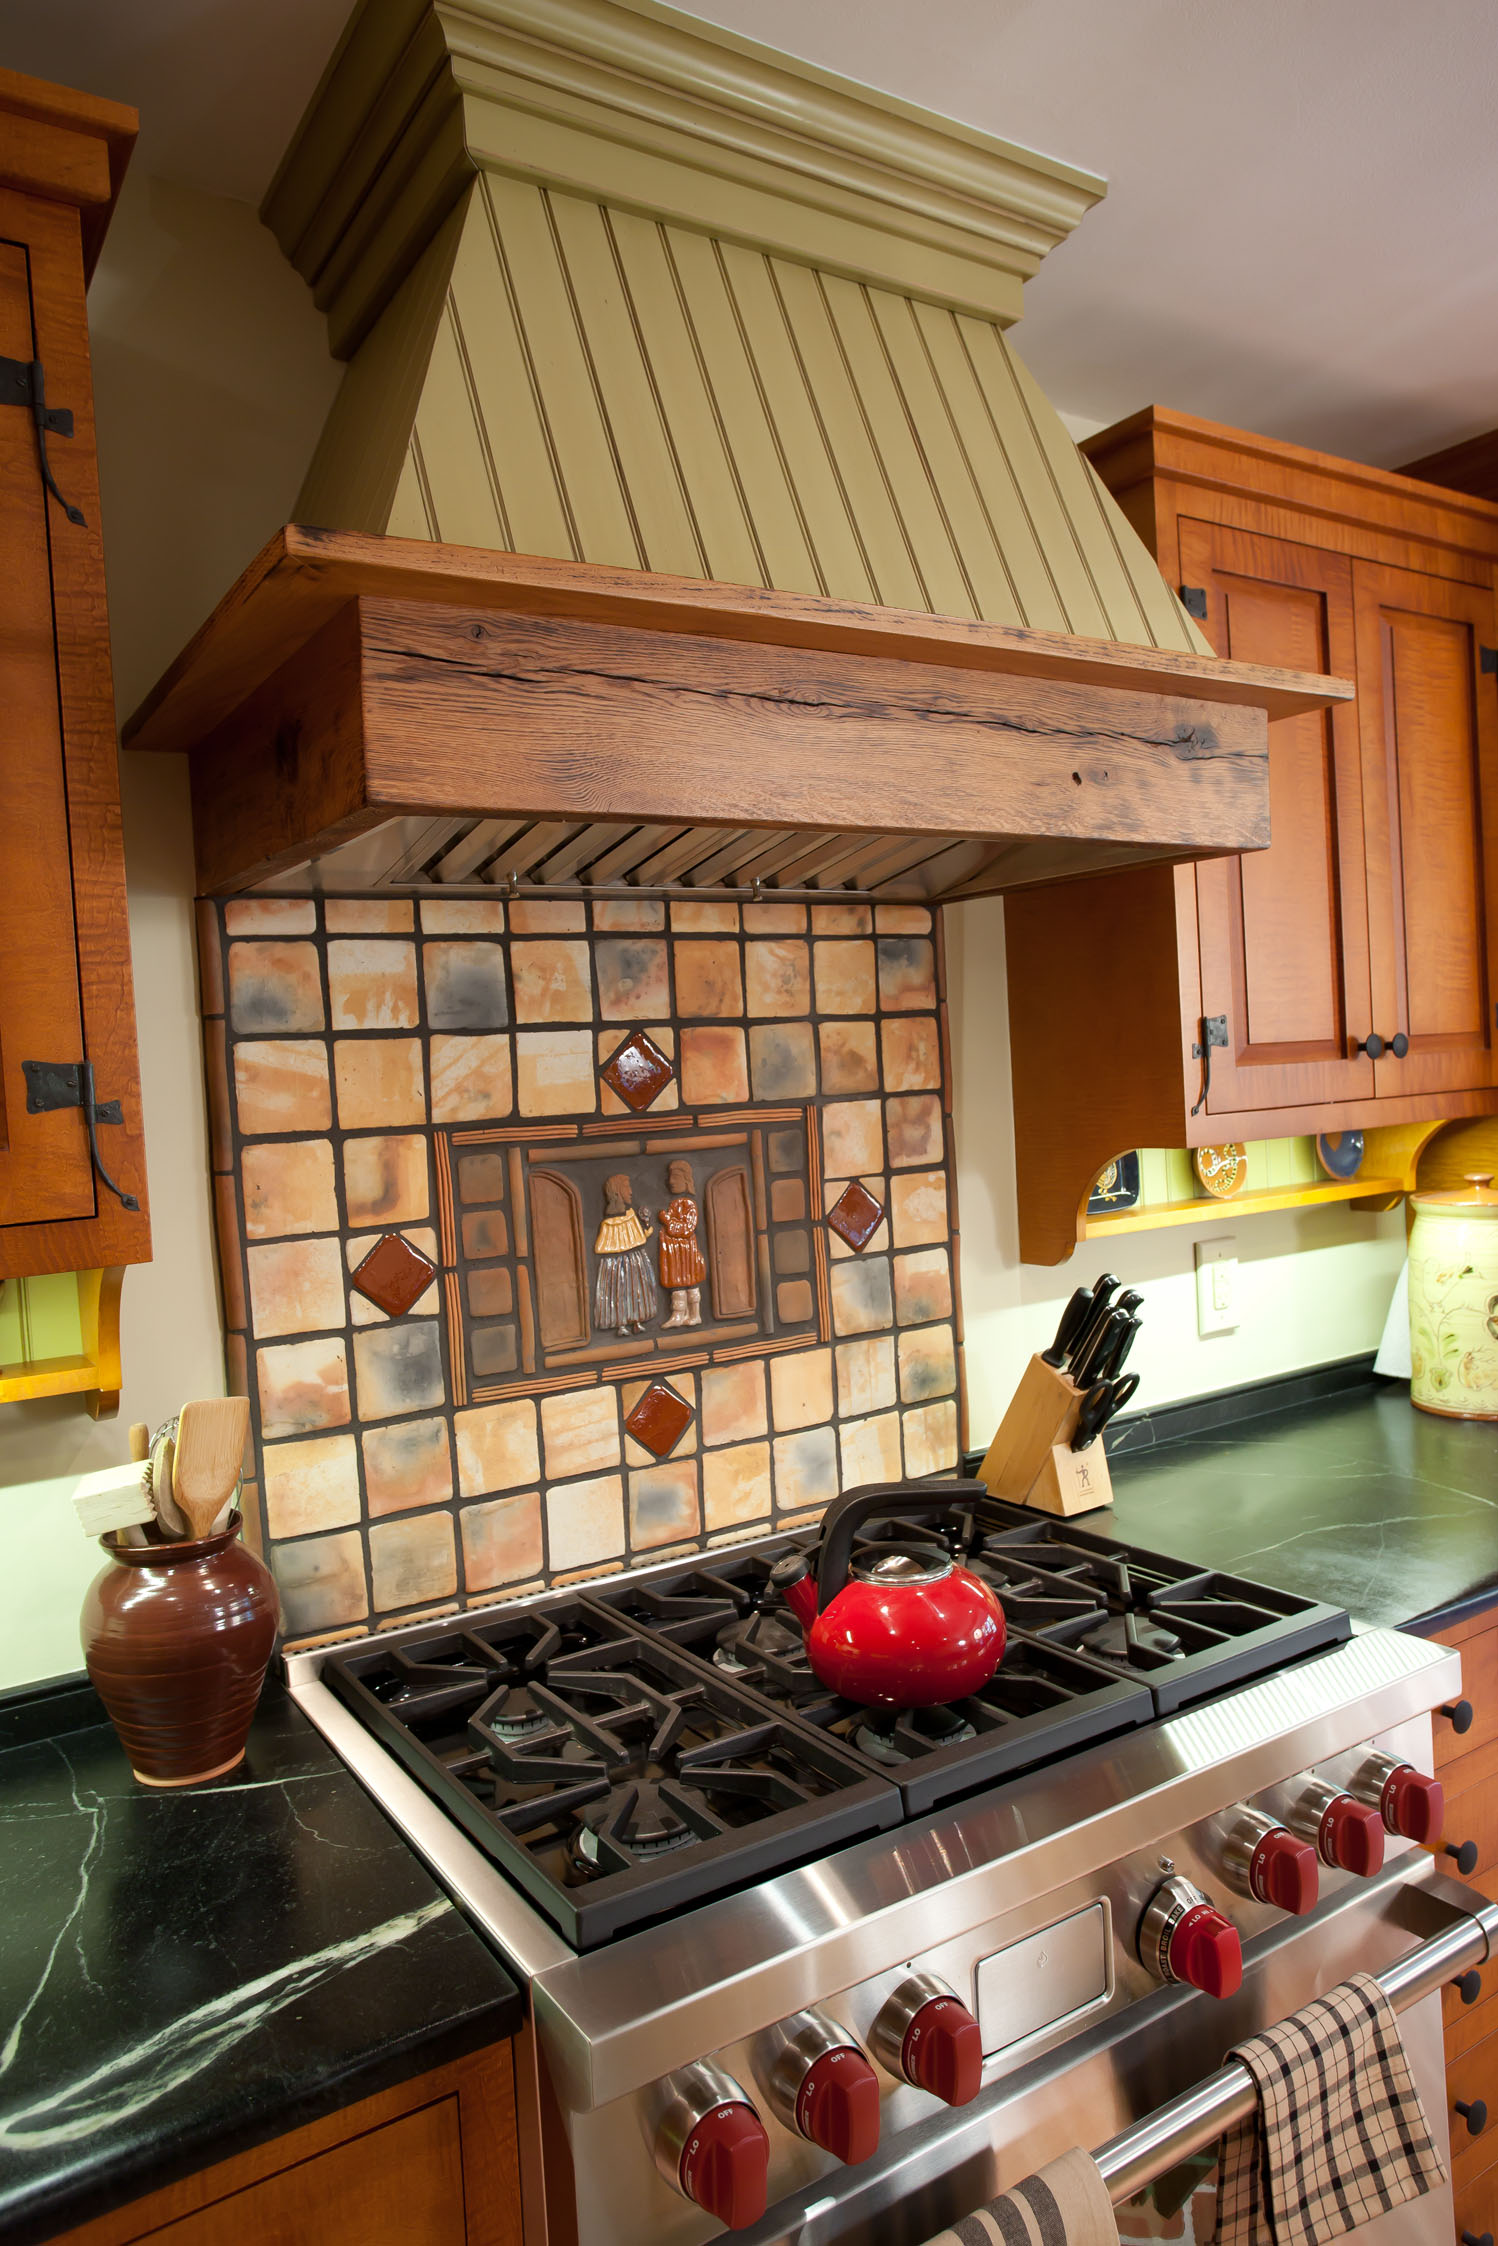 A beautiful range hood and backsplash